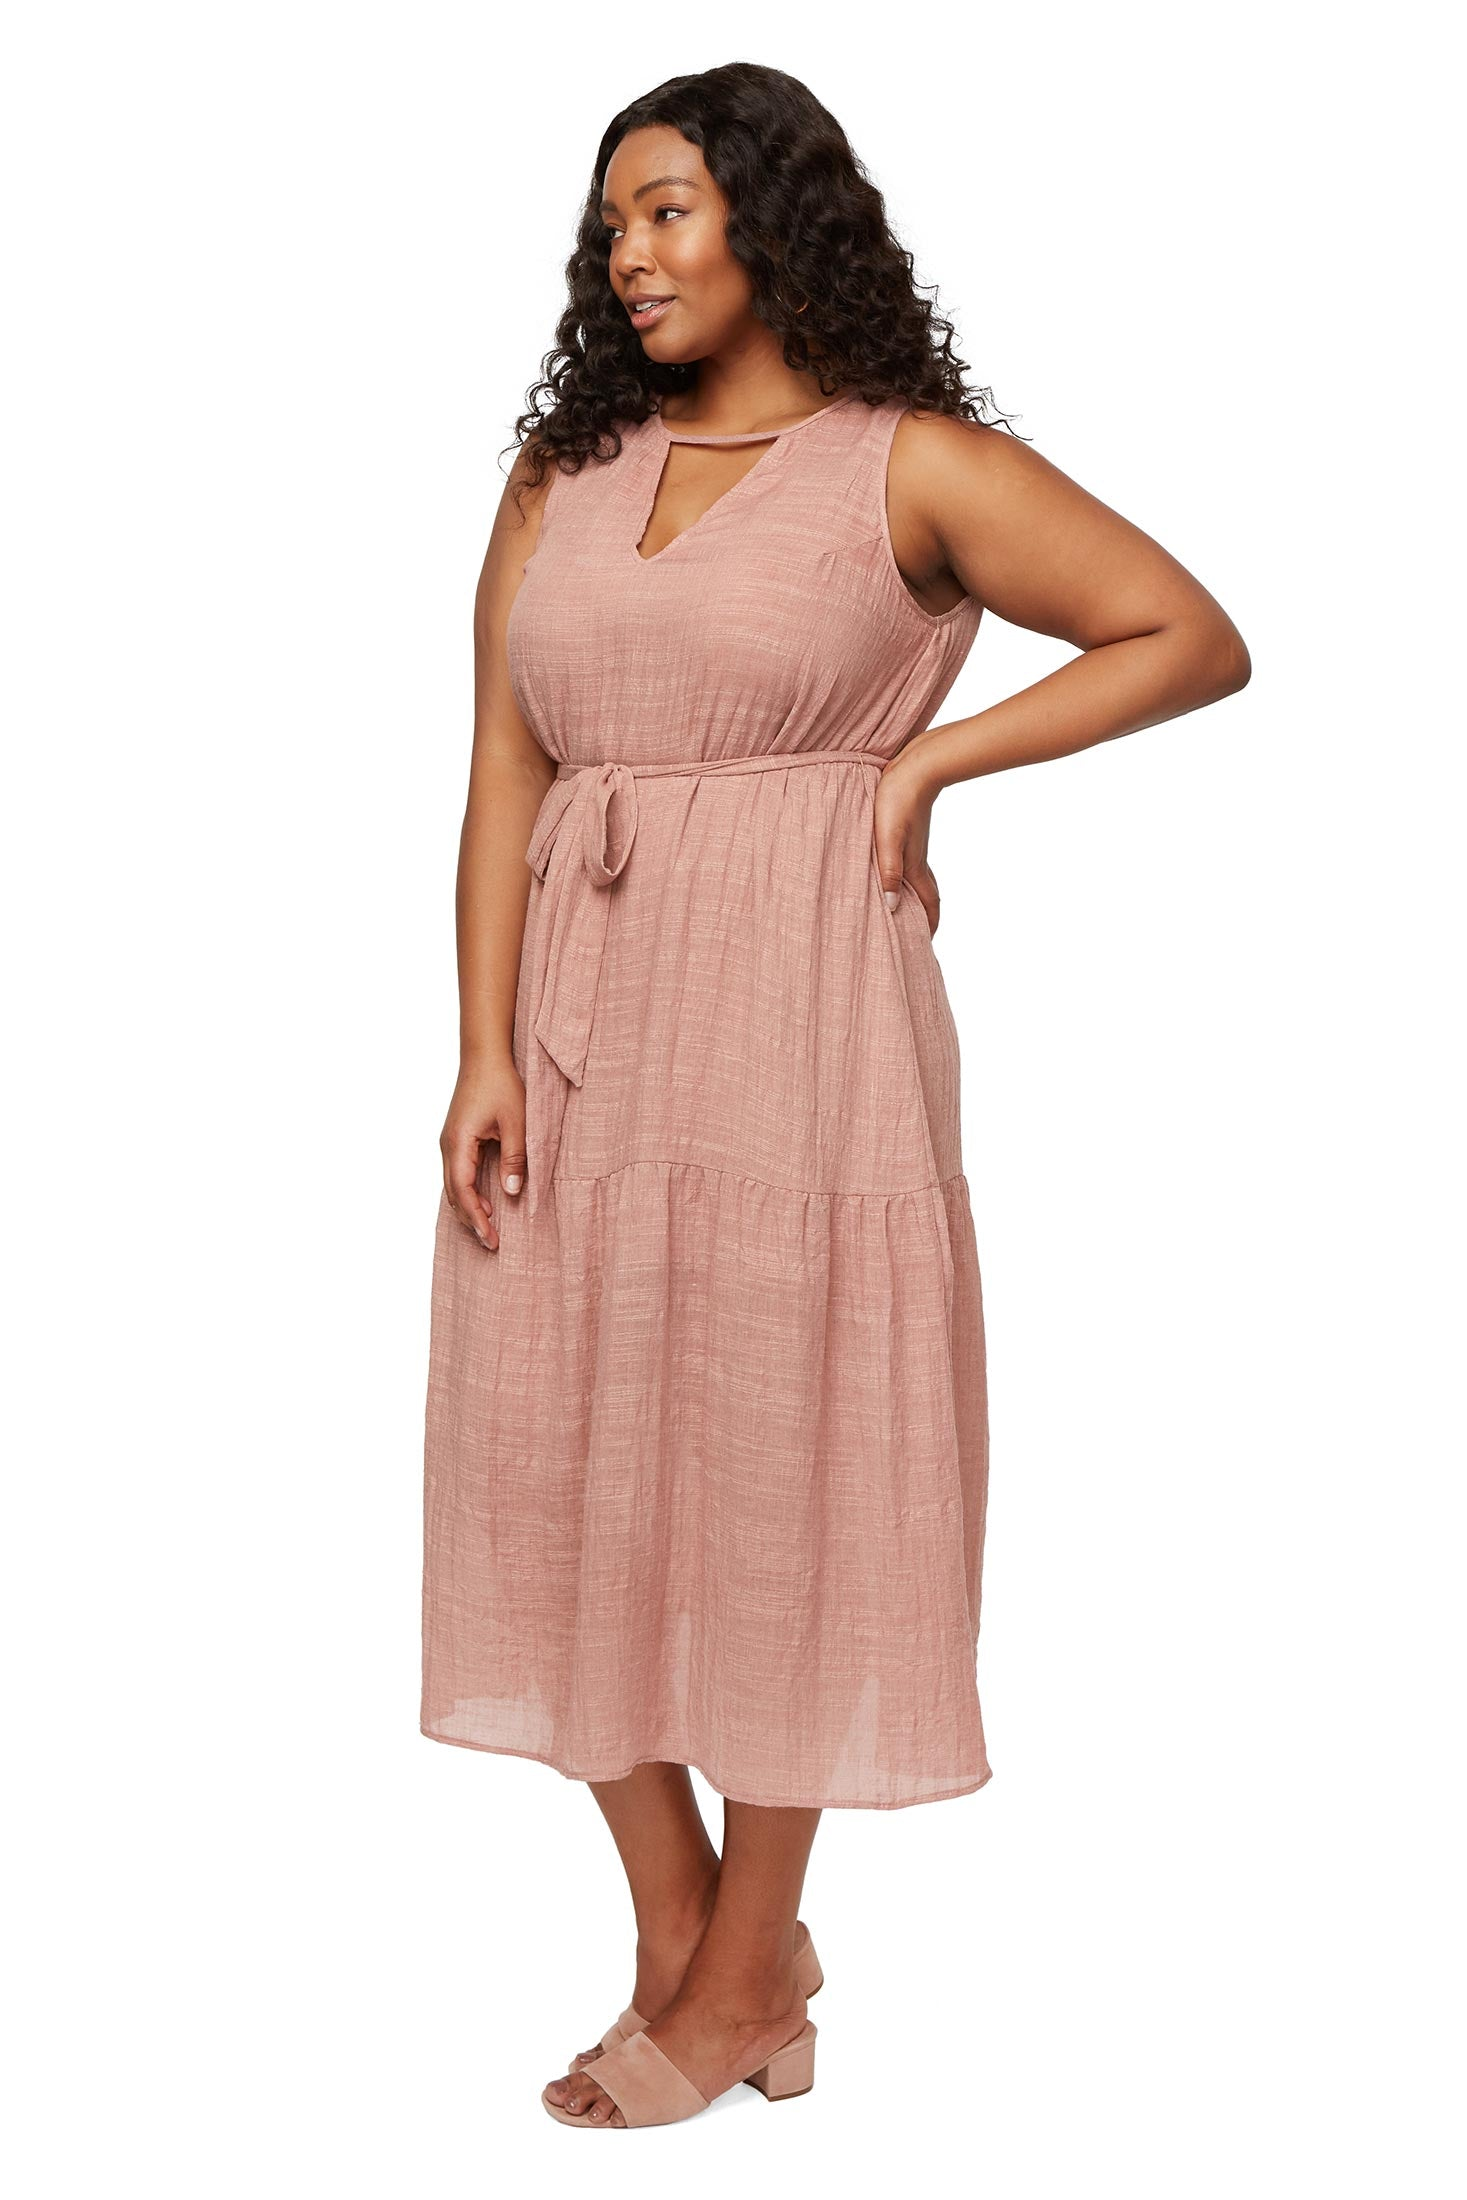 Guaze Lanna Dress - Mauve, Plus Size